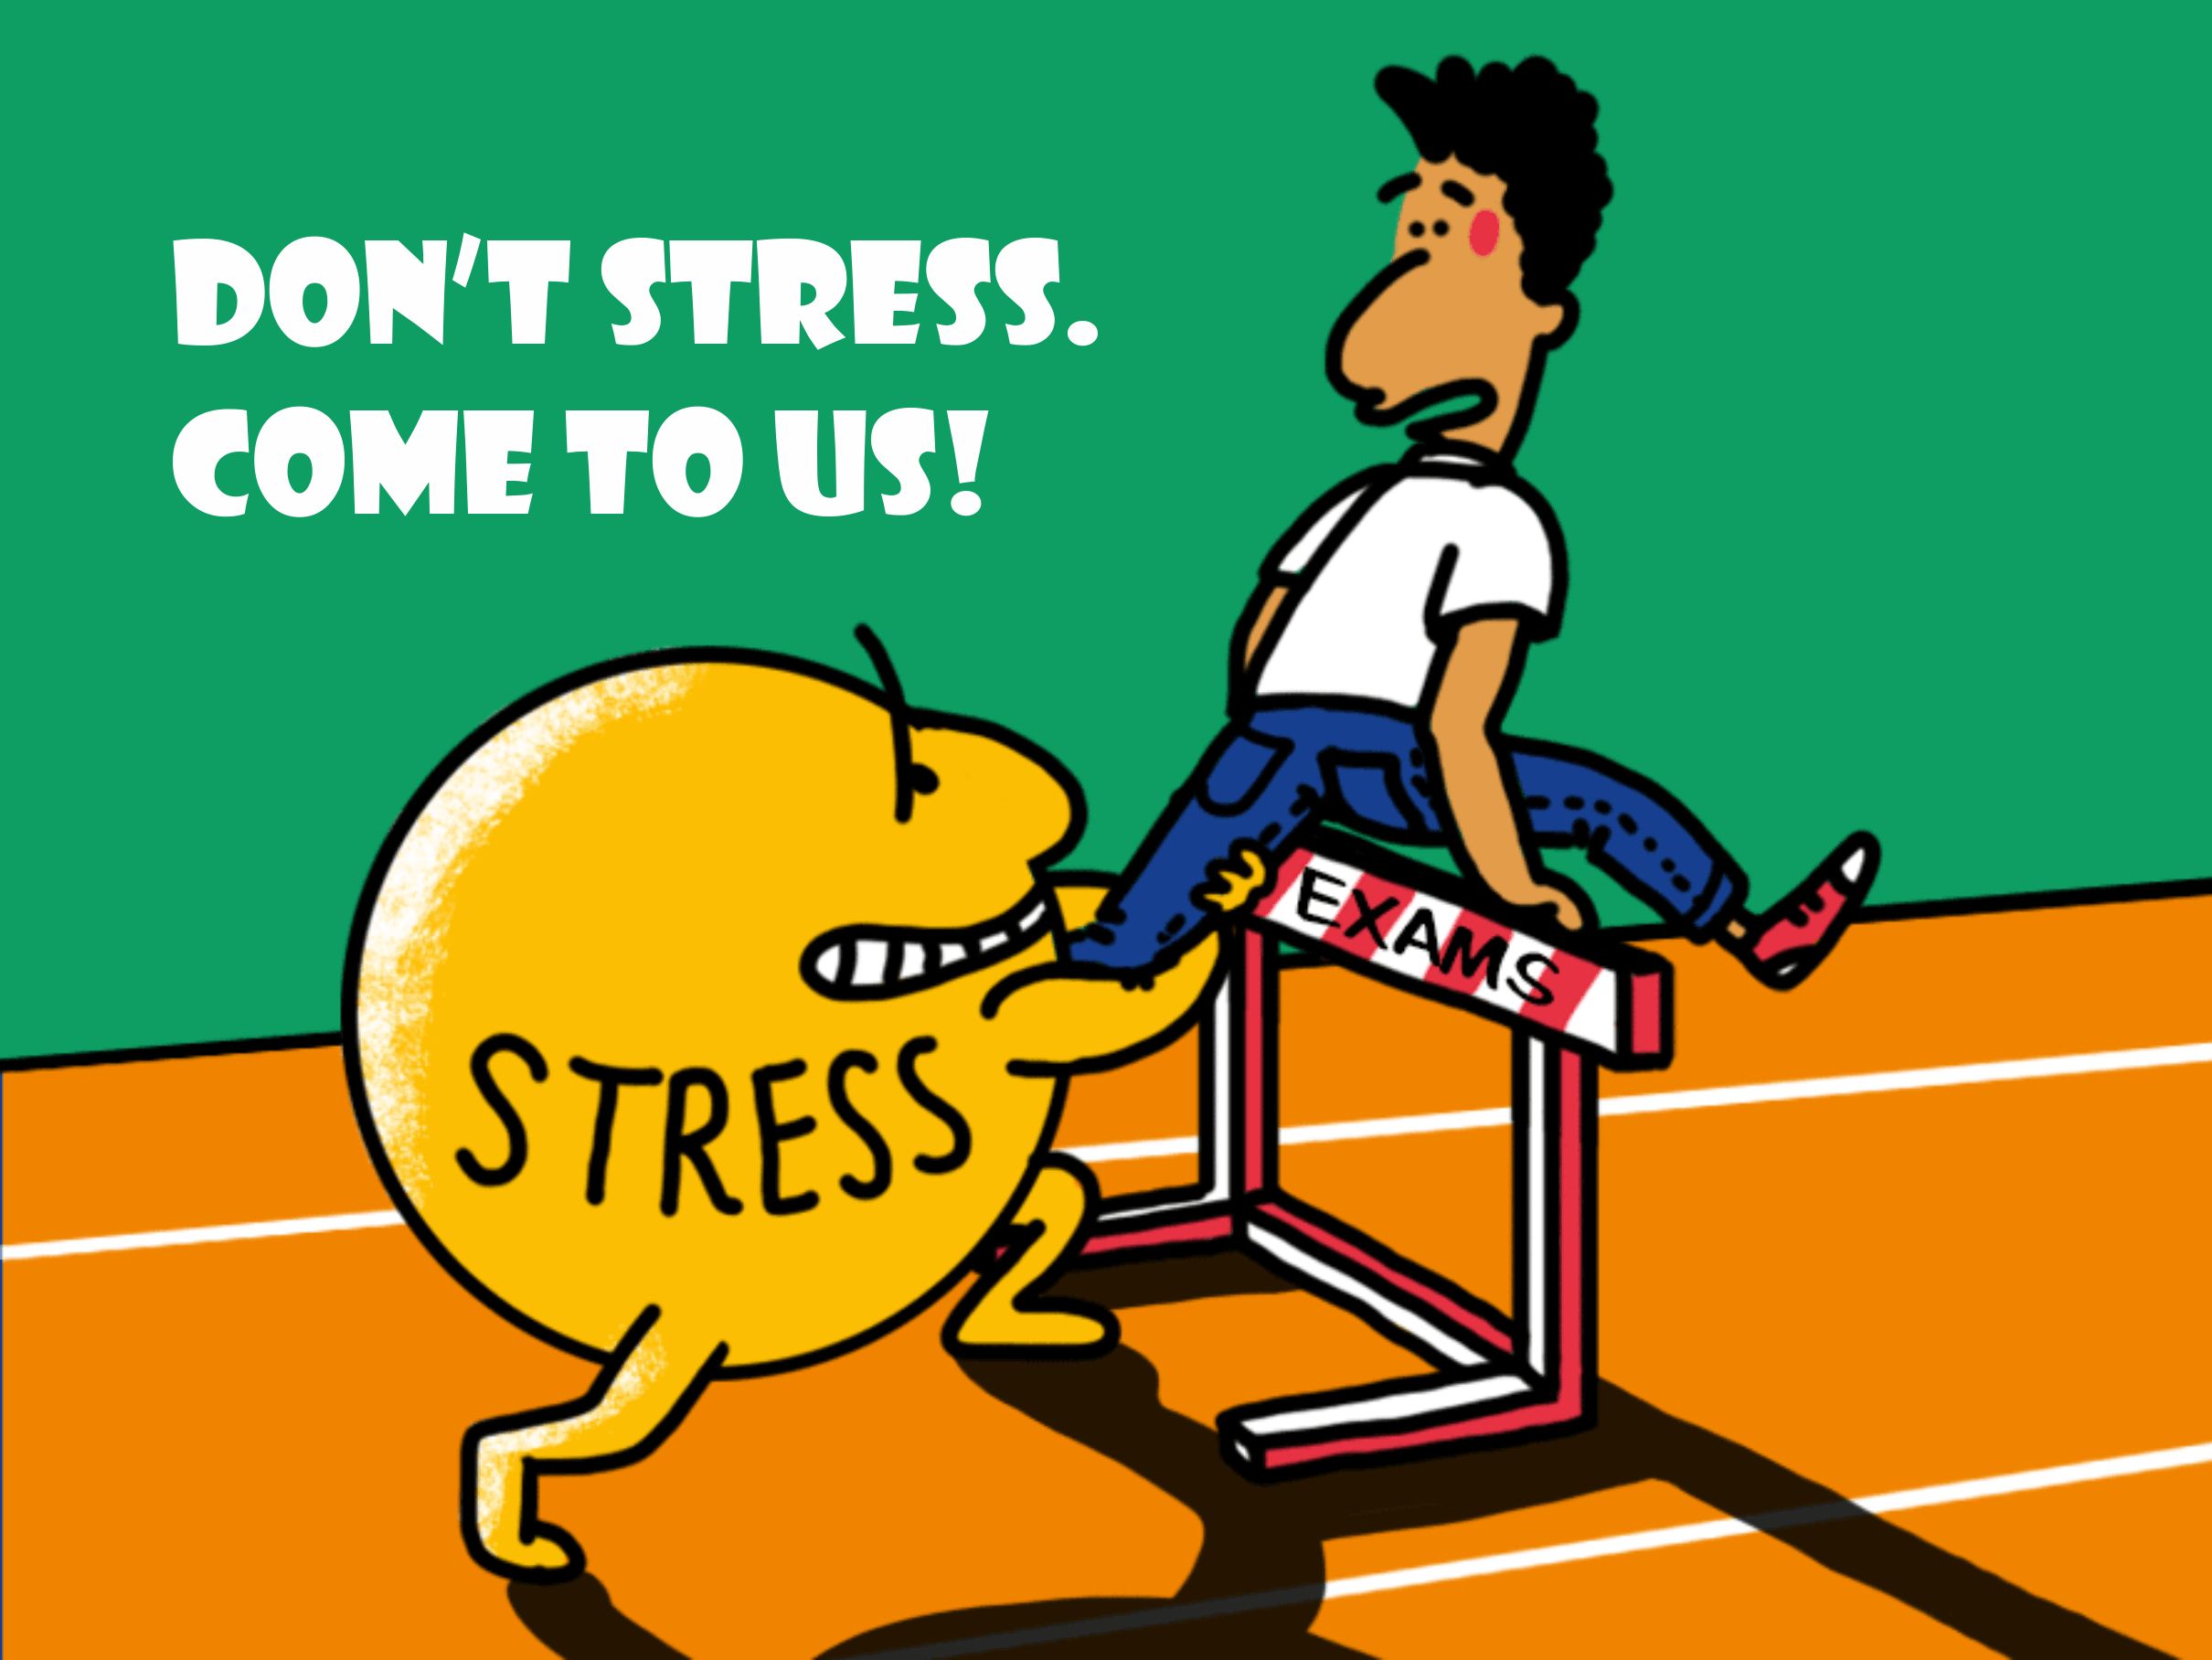 cope coursework stress 5 ways to relieve stress anne scholle july 7, 2015 blog , stress reduction 0 comments for our ancestors, stress was a survival skill during brief, life threatening situations.